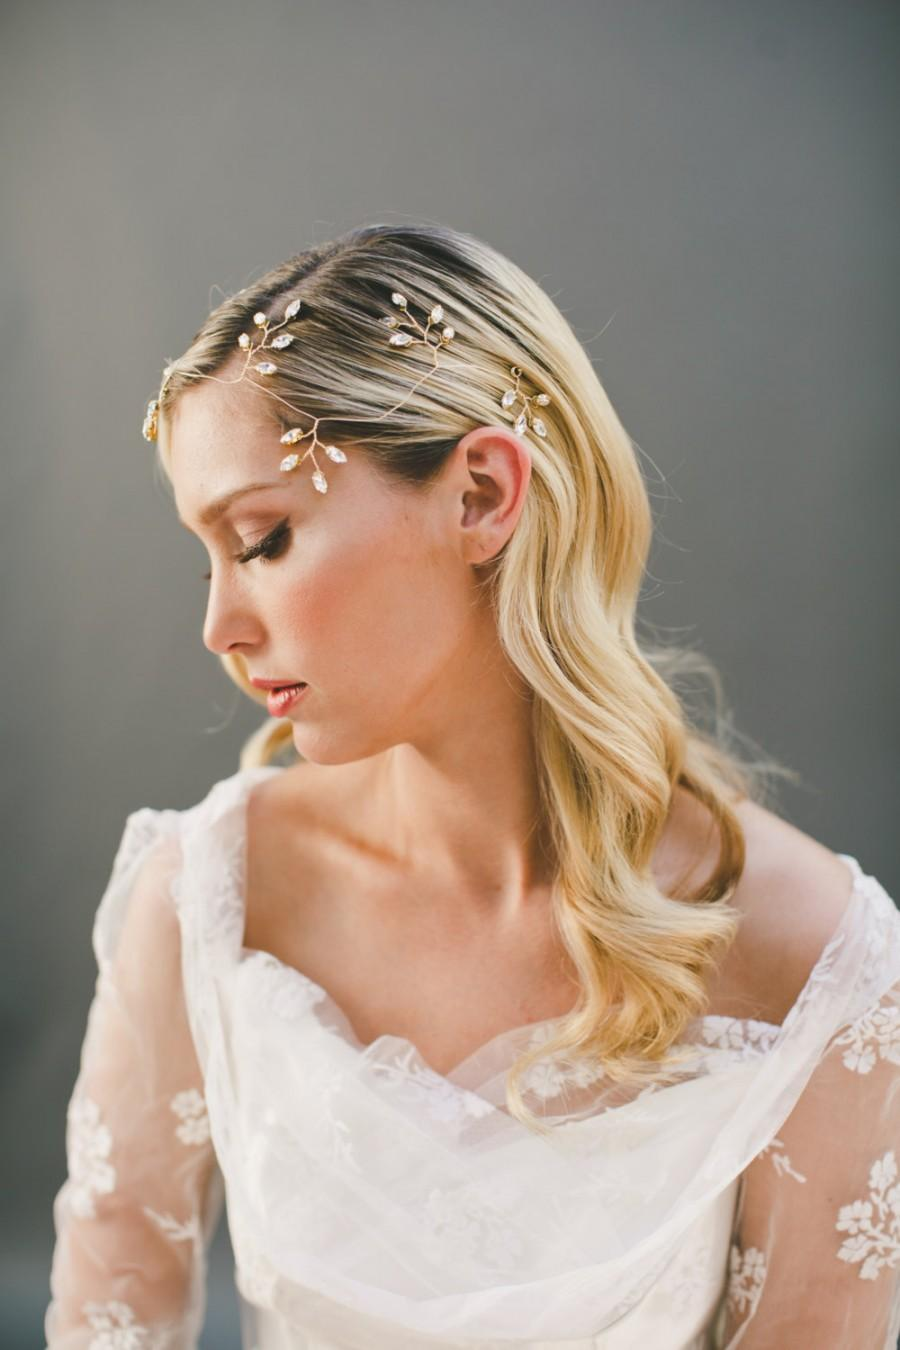 Grecian Hair Wreath Gold Leaf Hair Crown Ivy Vine Hair Halo 1920s